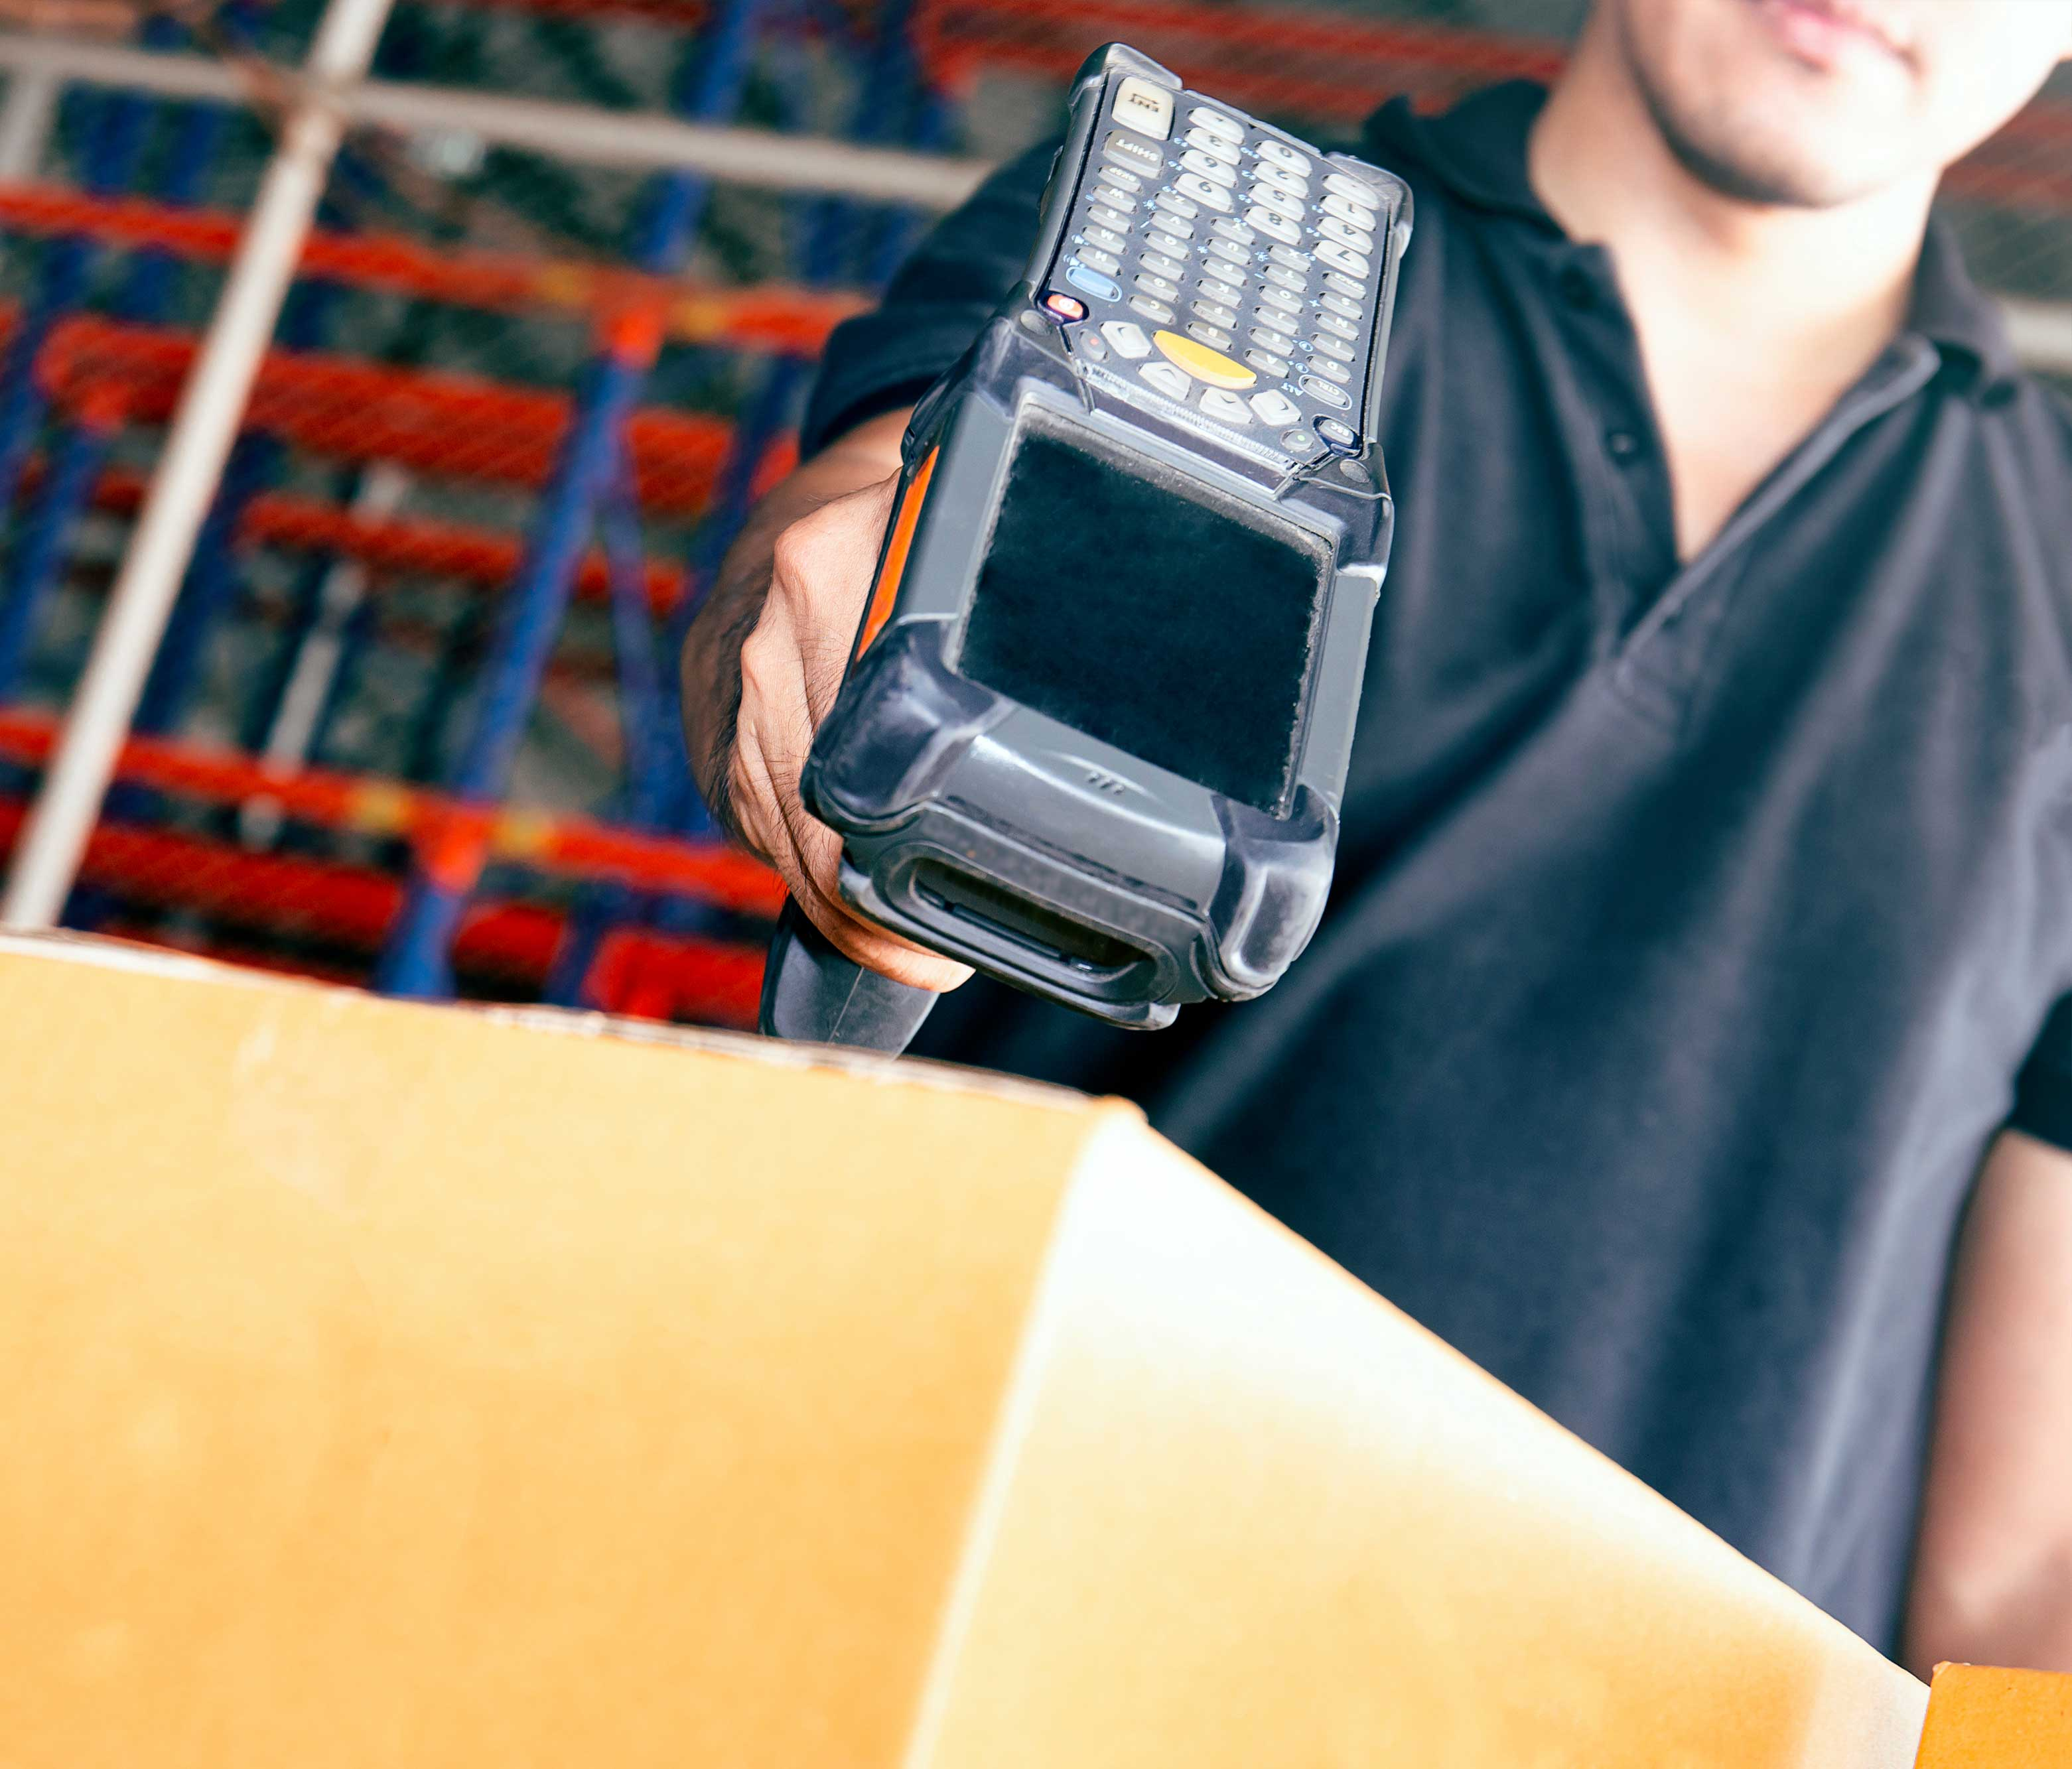 Barcode Scanning Device